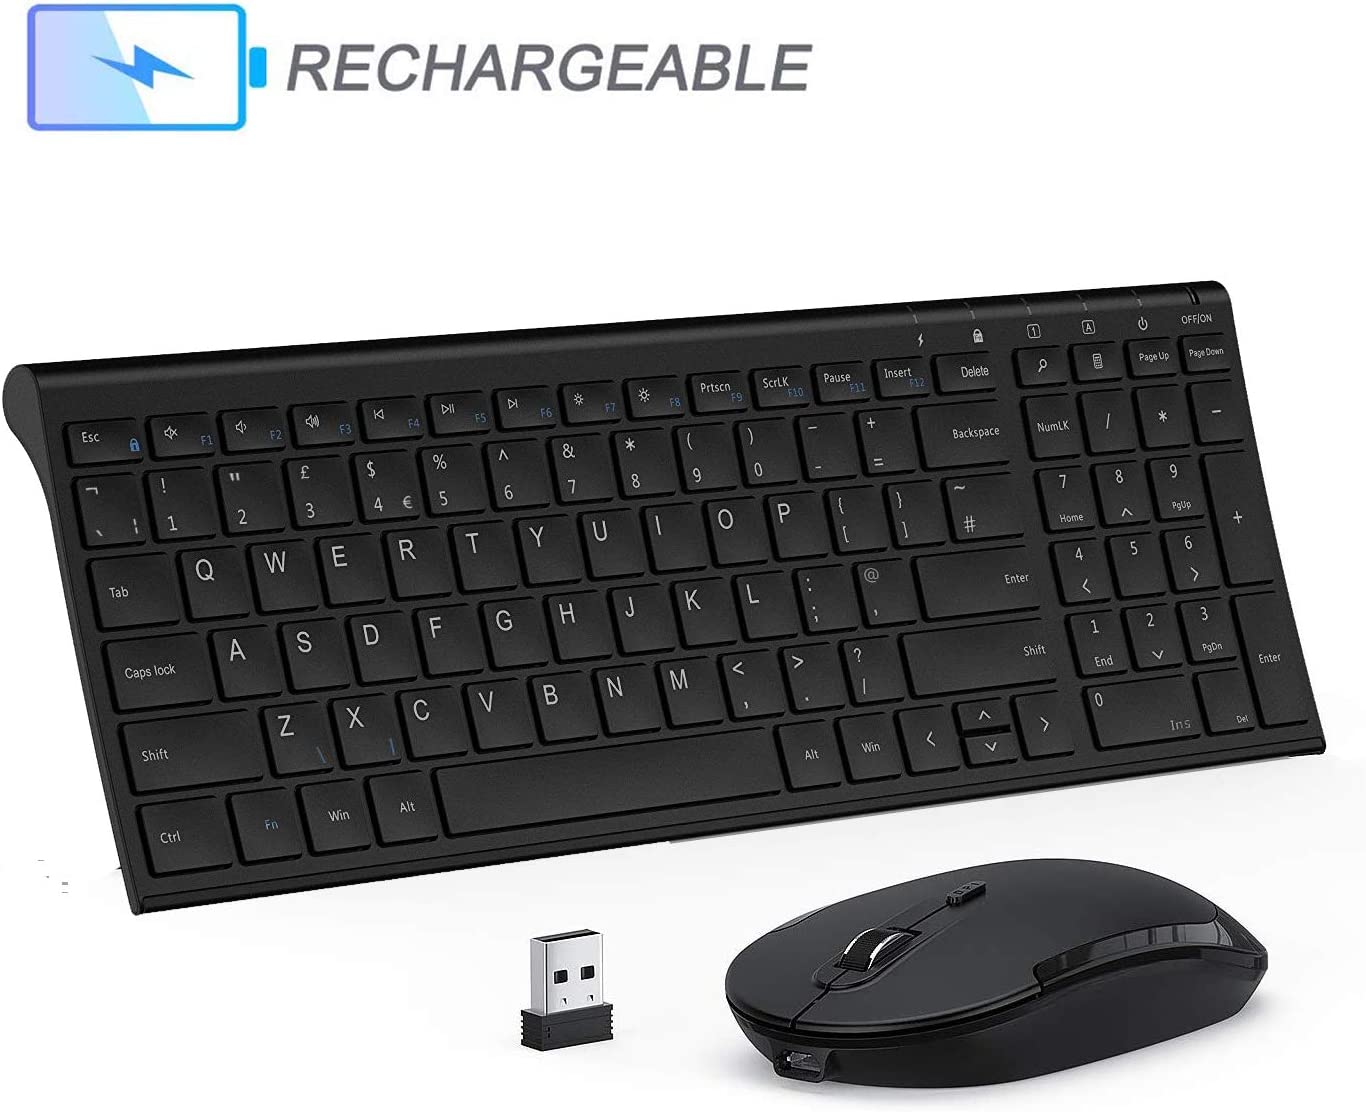 Seenda 2.4G Rechargeable Ultra Slim Thin Wireless Keyboard Mouse Combo Metal Keyboard Silent Mouse with Number Pad for PC Laptops Smart TV Windows QWERTY UK Layout Wireless Keyboard and Mouse